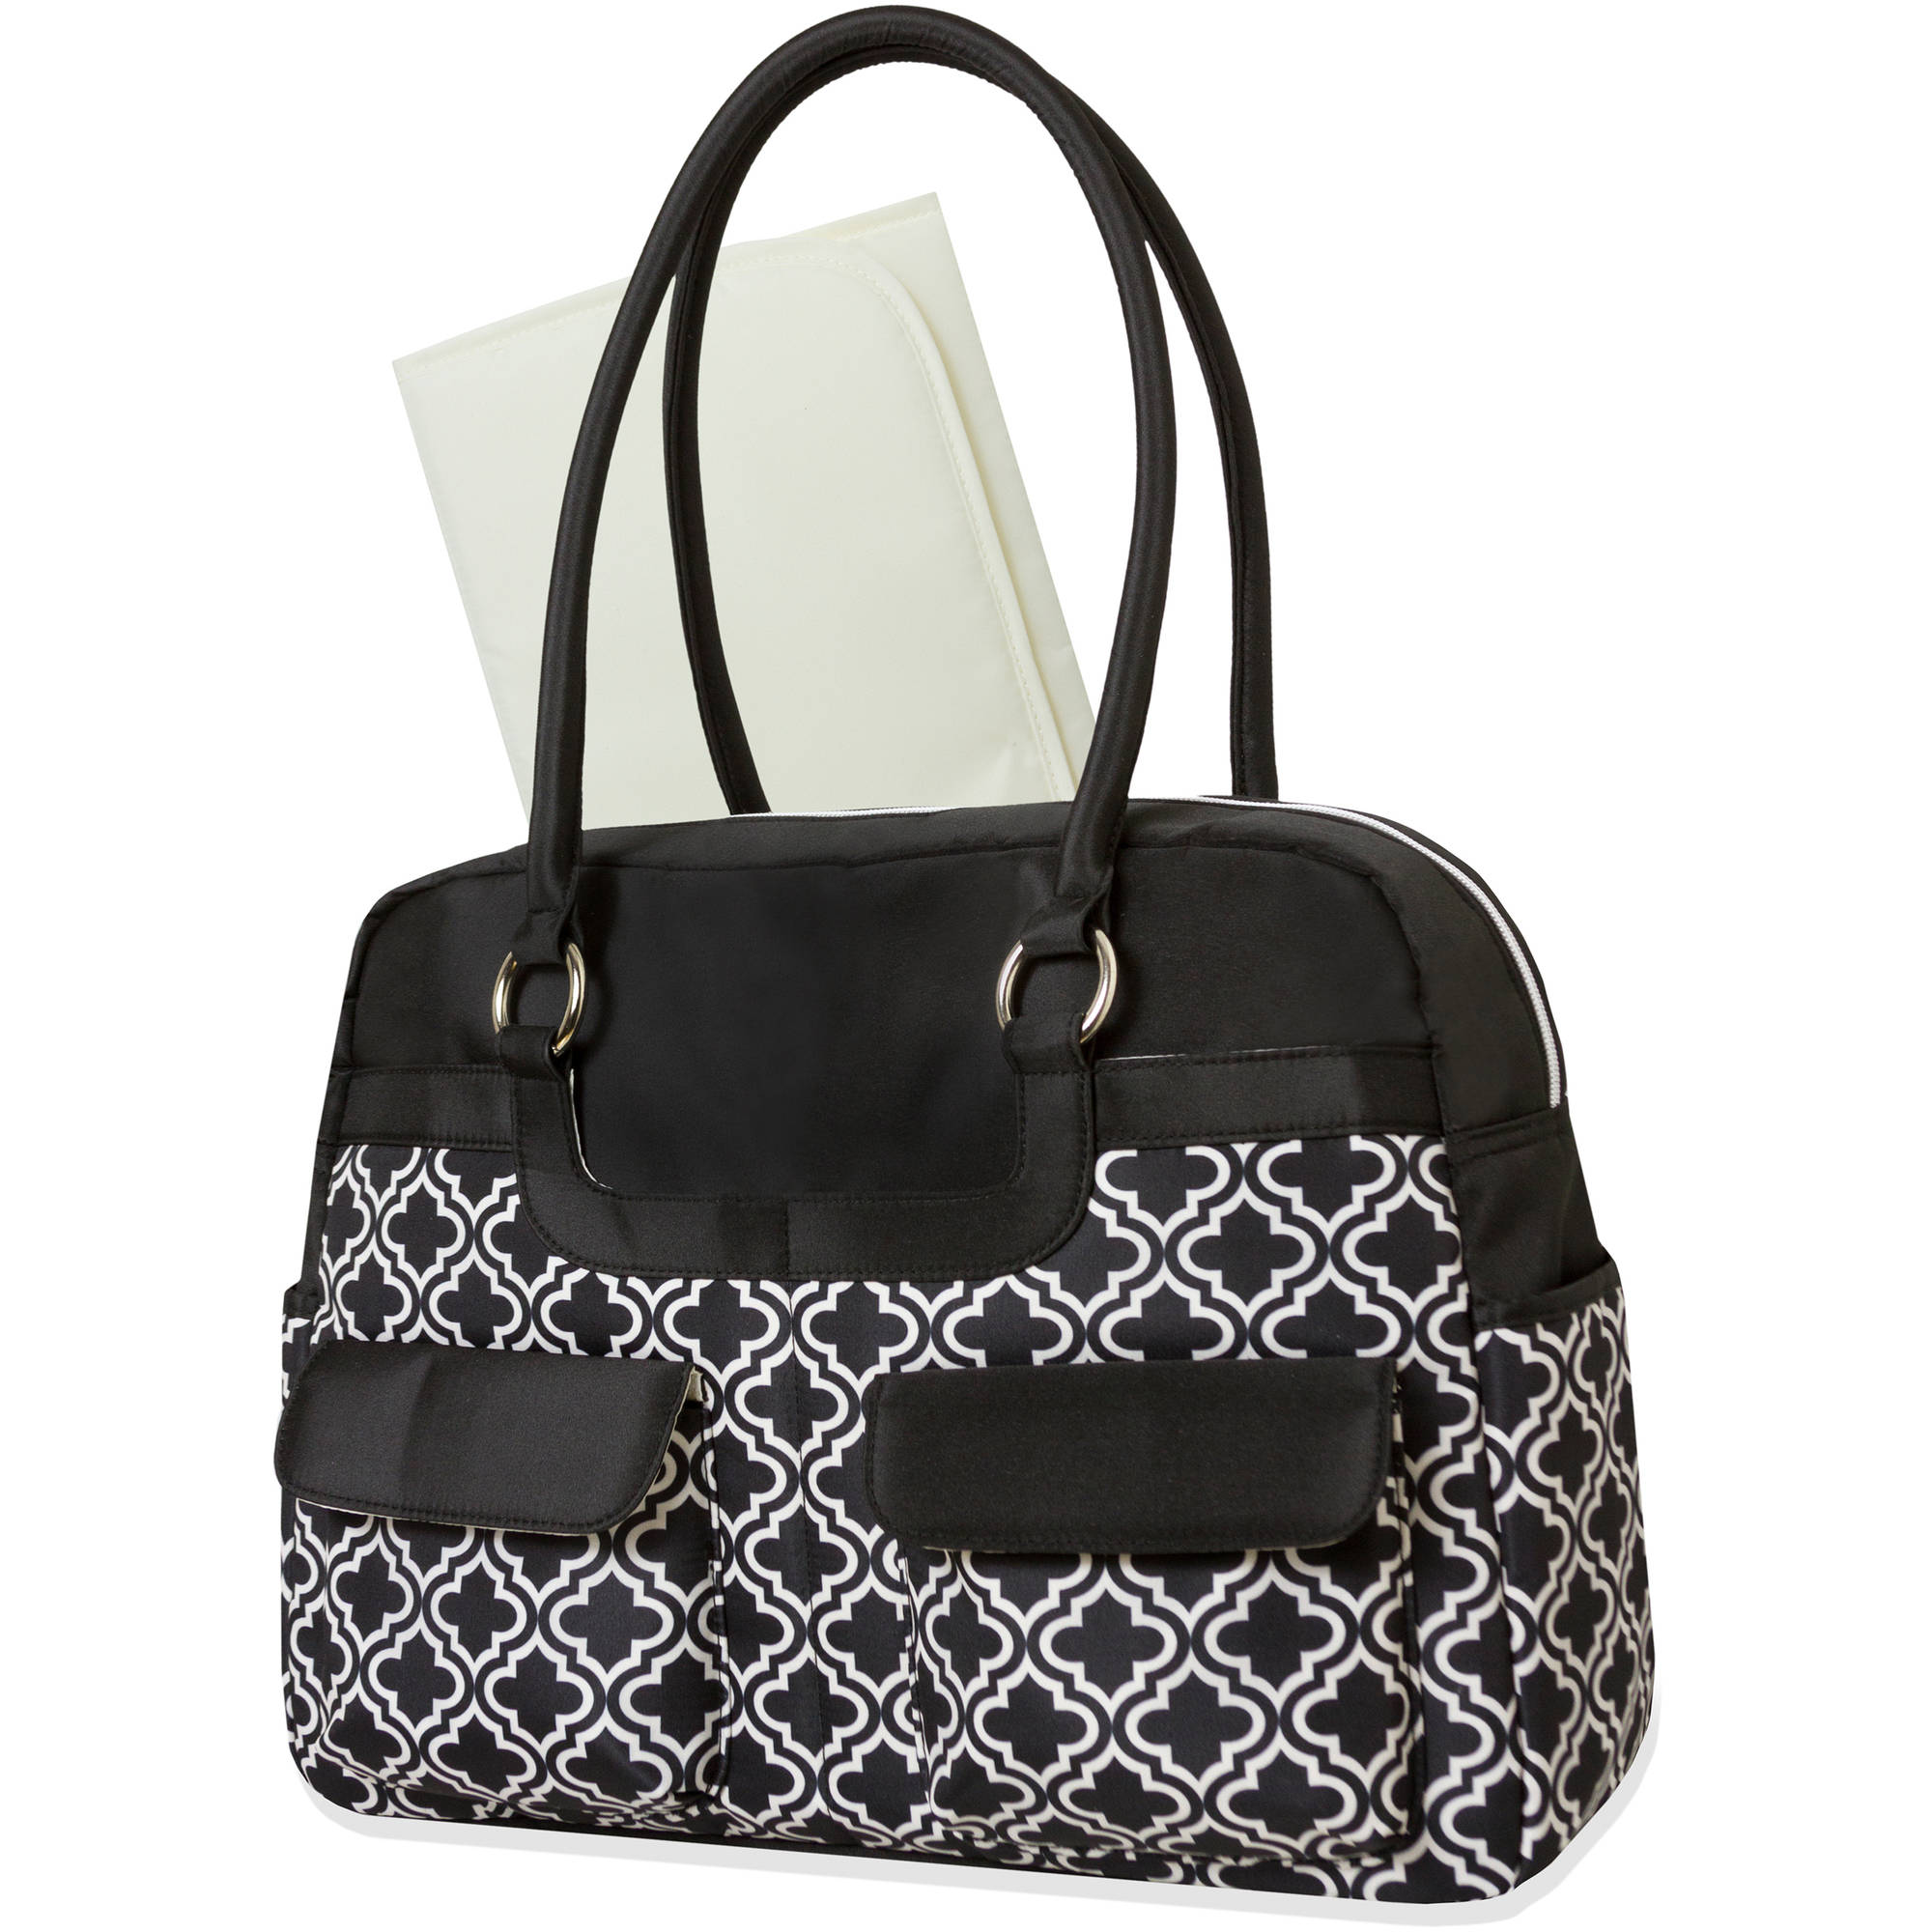 Baby Essentials Geometric Microfiber Diaper Bag, 2-Piece Set